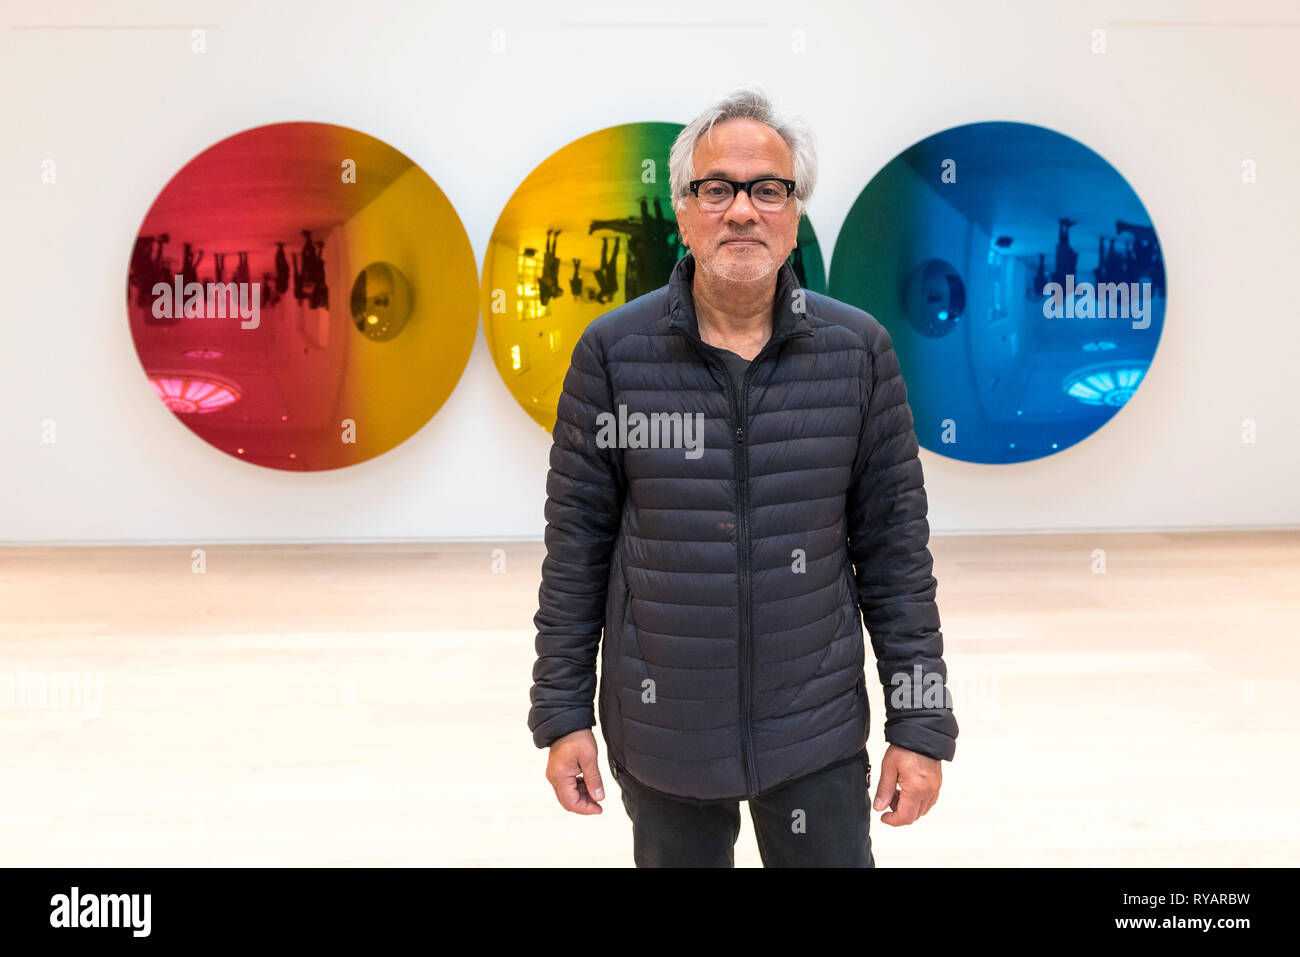 London, UK.  13 March 2019. Anish Kapoor poses next to his work 'Red to Blue', 2016.  Photocall for the launch of a solo exhibition by Anish Kapoor, at the restored Pitzhanger Manor and Gallery, in Ealing.  The exhibition runs 16 March to 18 August 2019. Credit: Stephen Chung / Alamy Live News - Stock Image